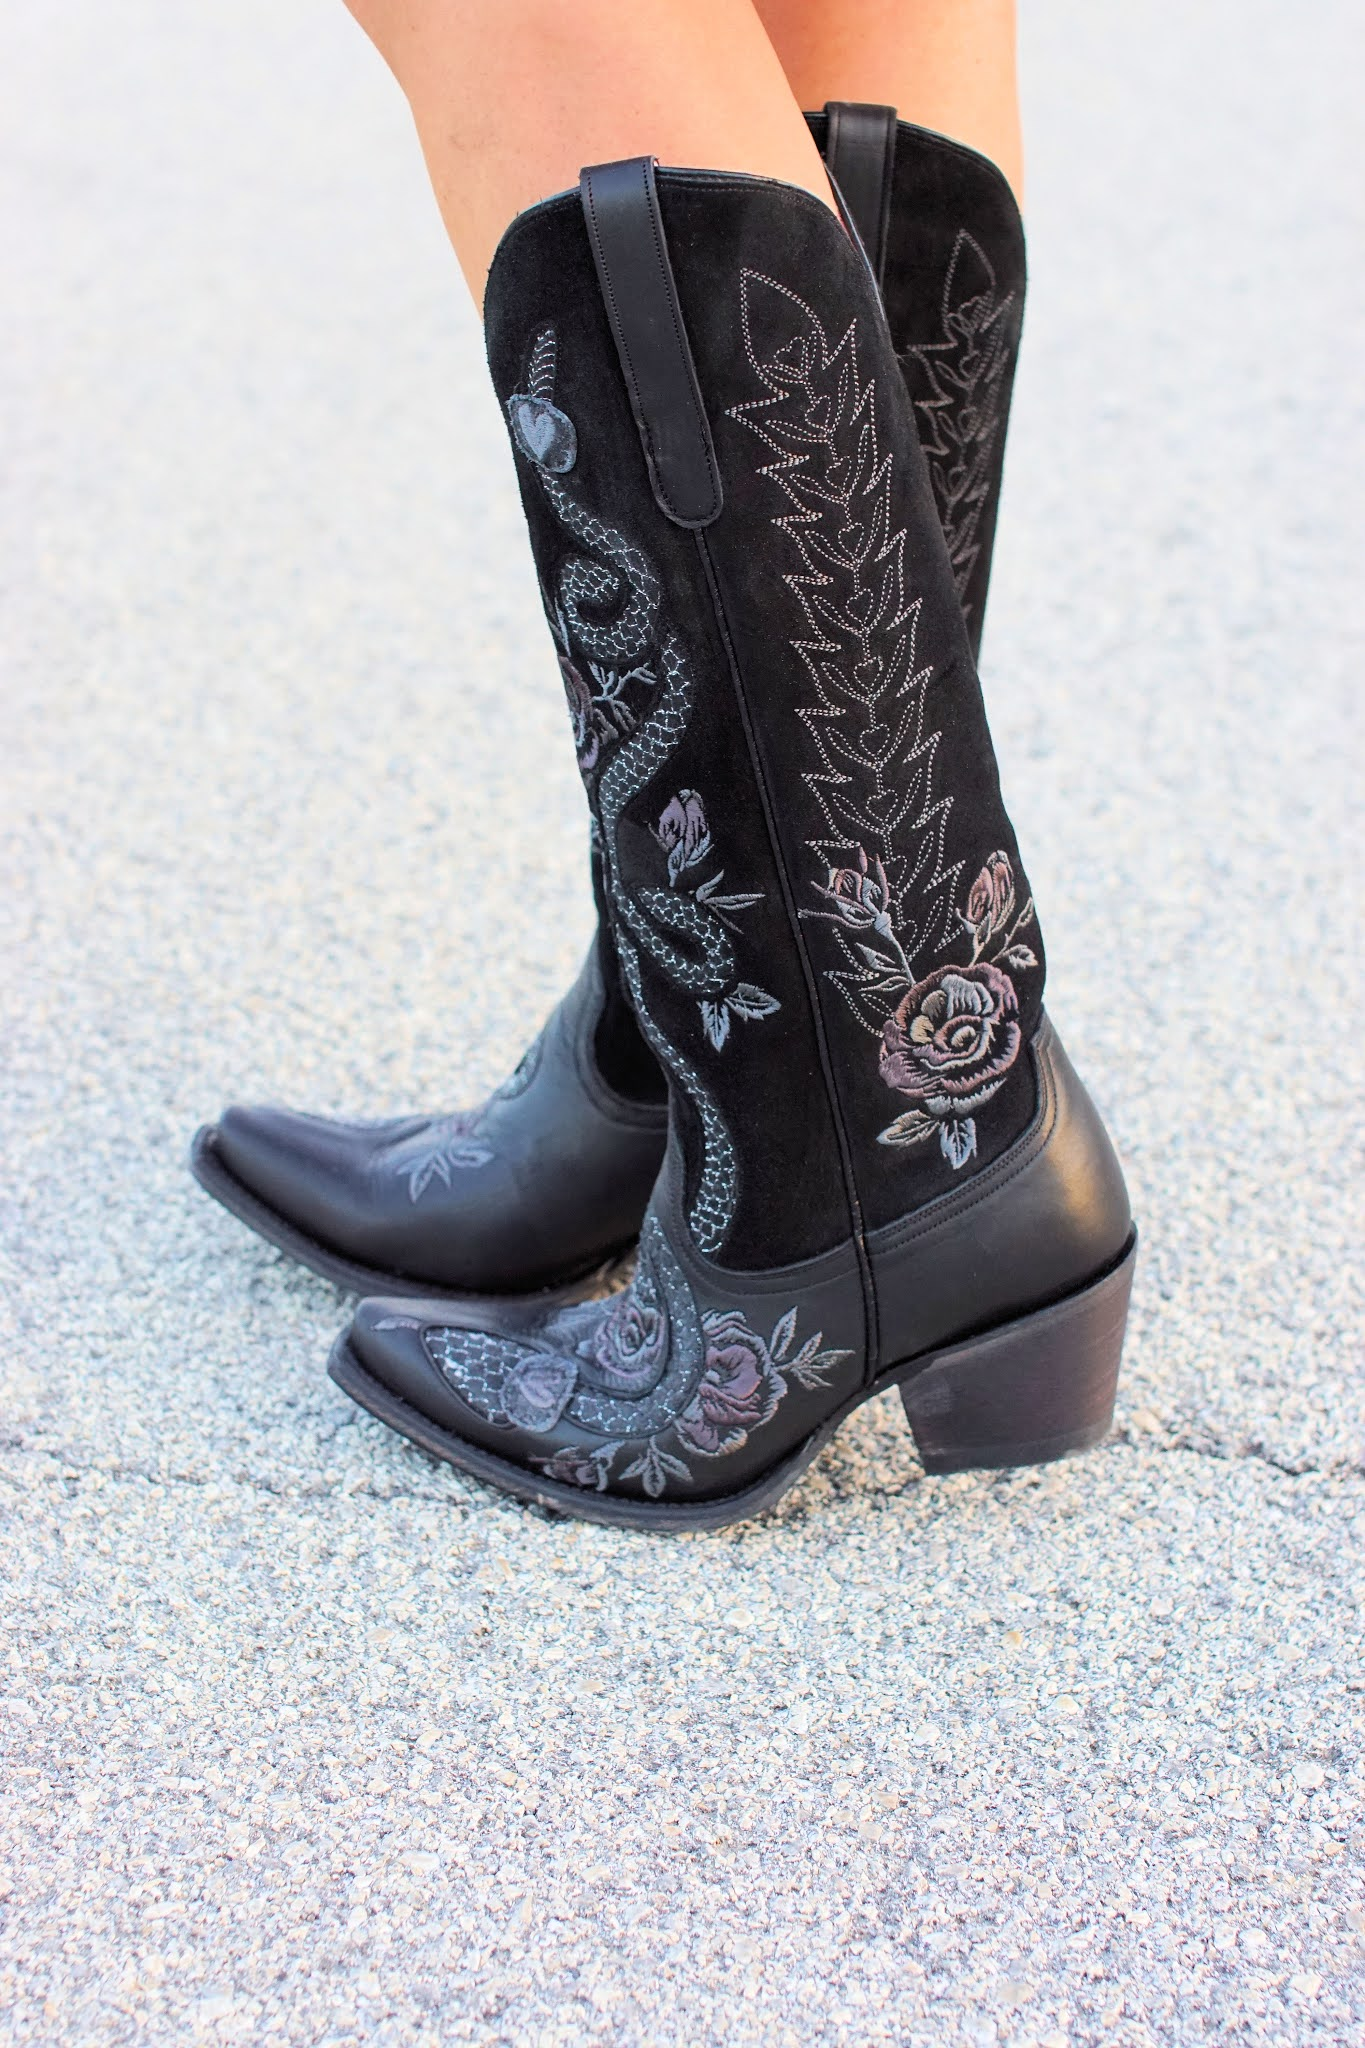 Lane Boots Charmer: american boots in Europe